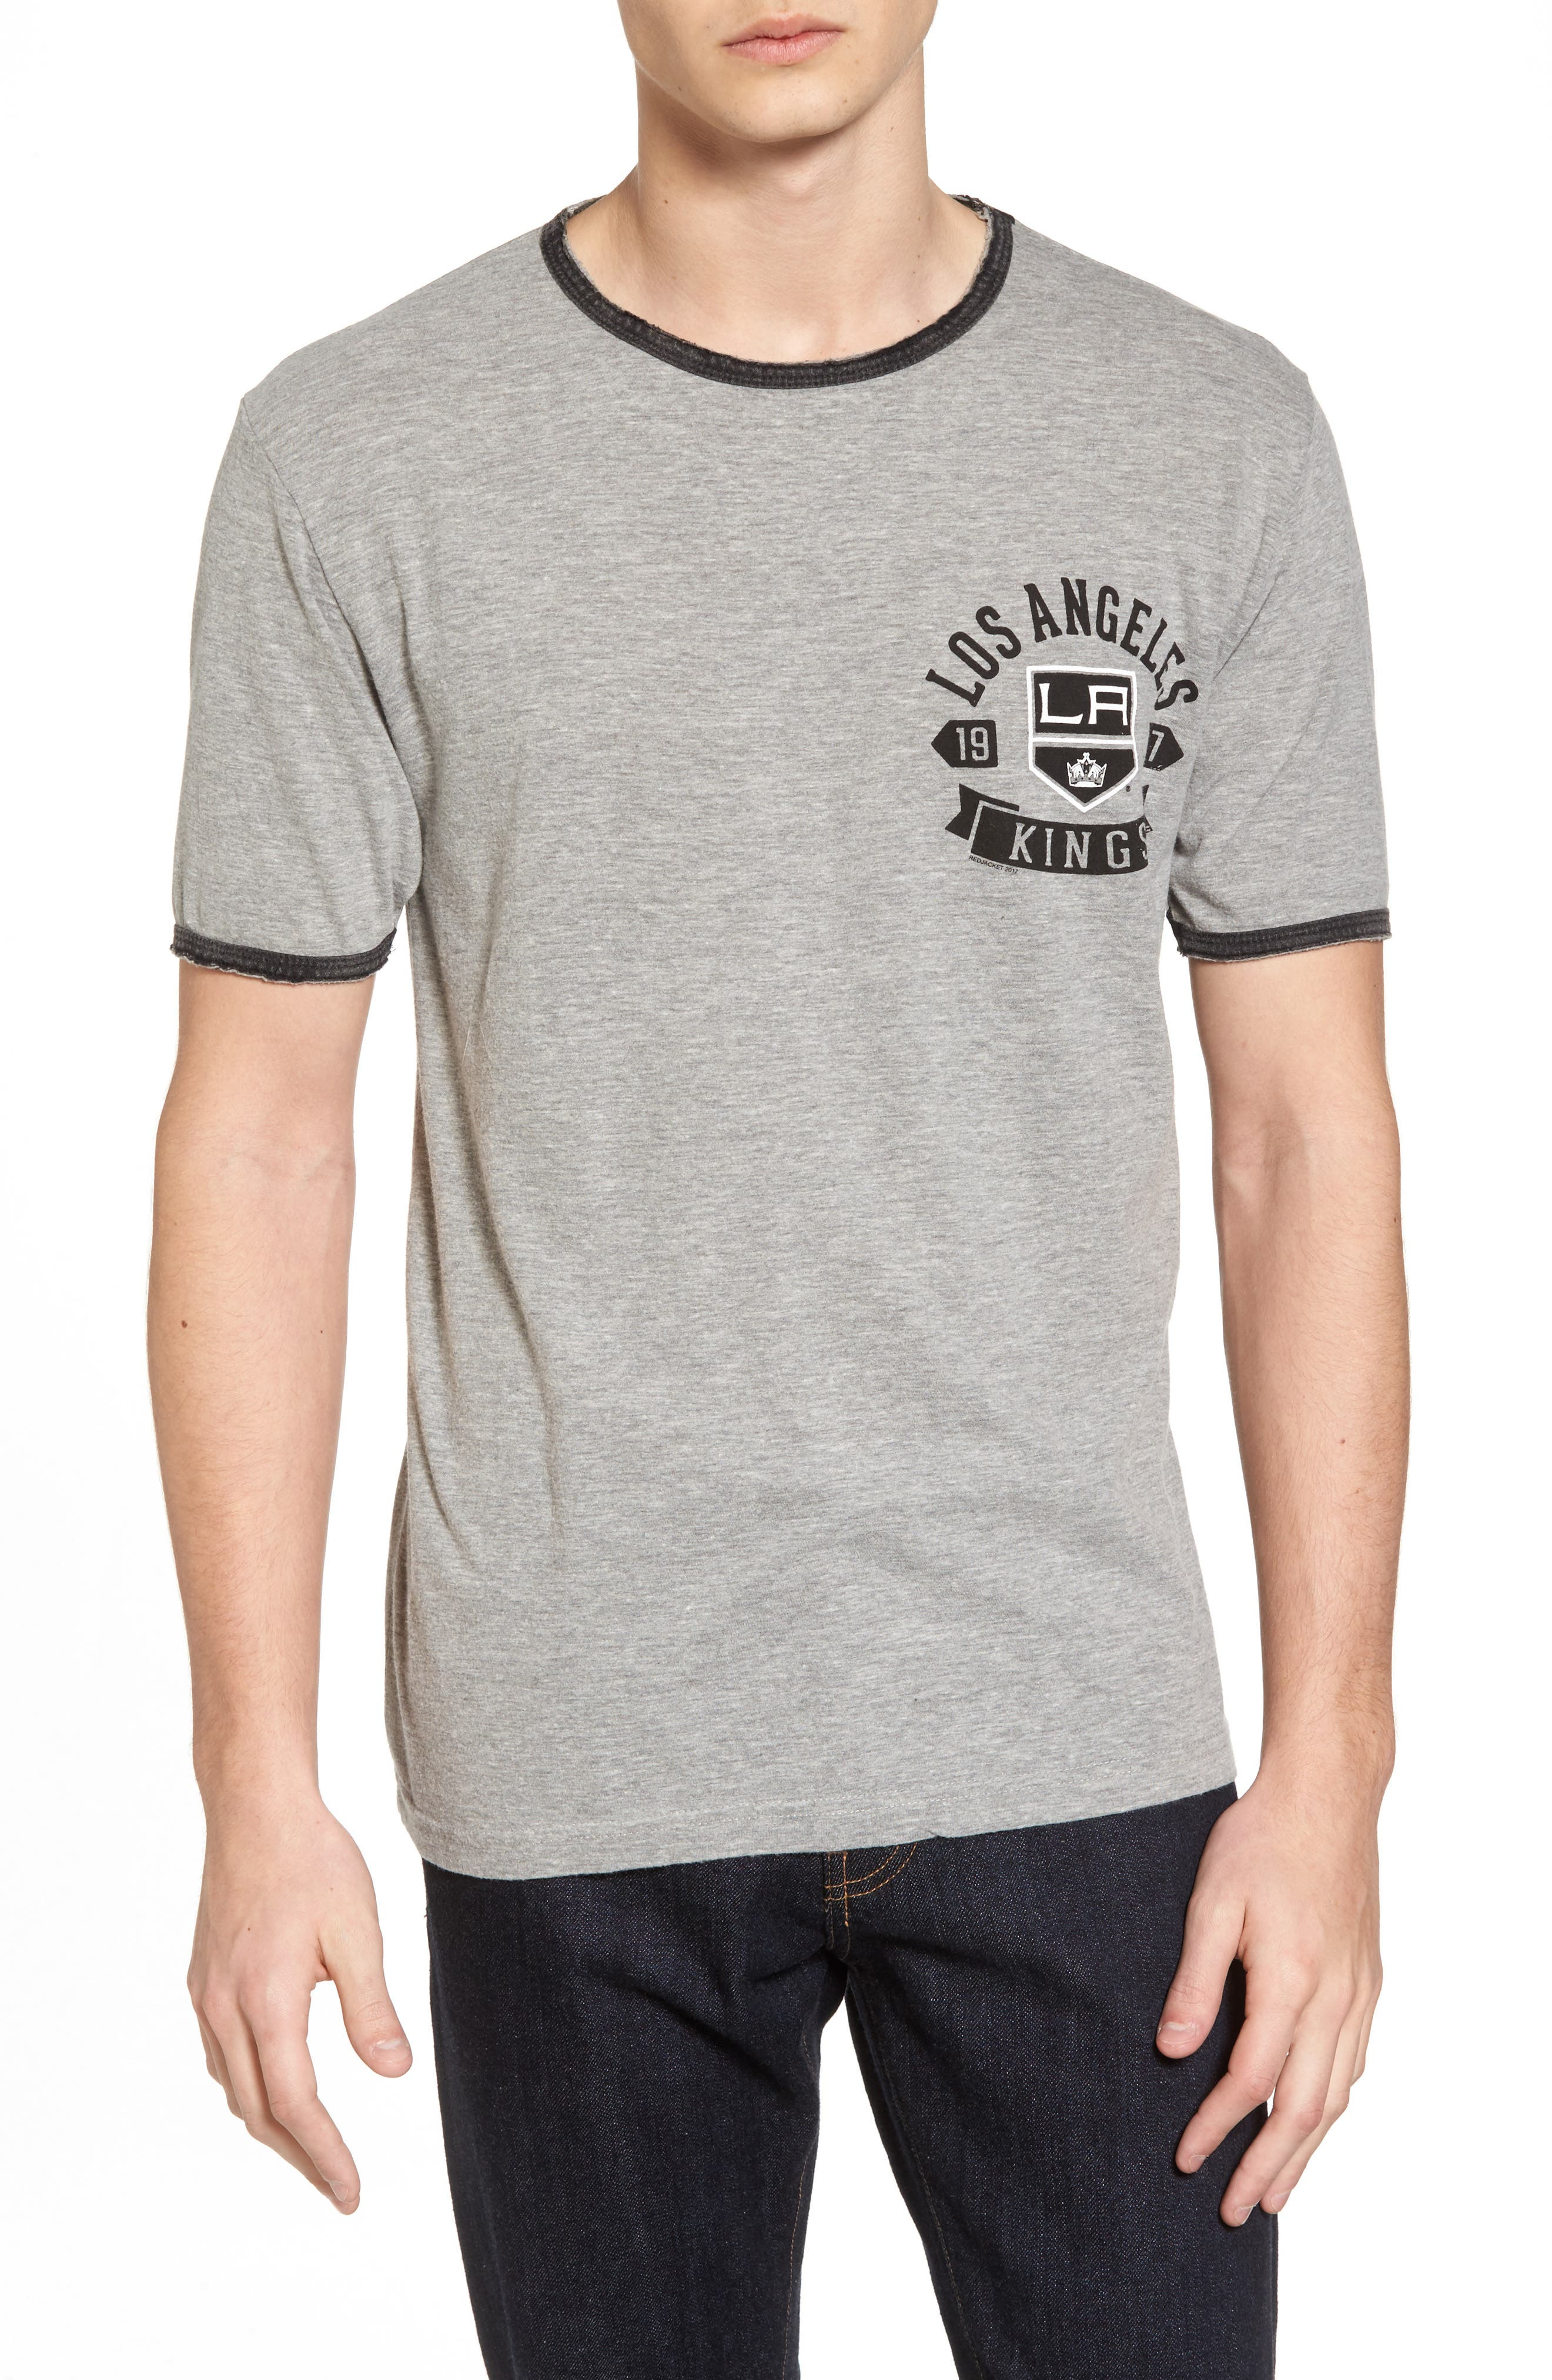 American Needle Portage Los Angeles Kings Ringer T-Shirt